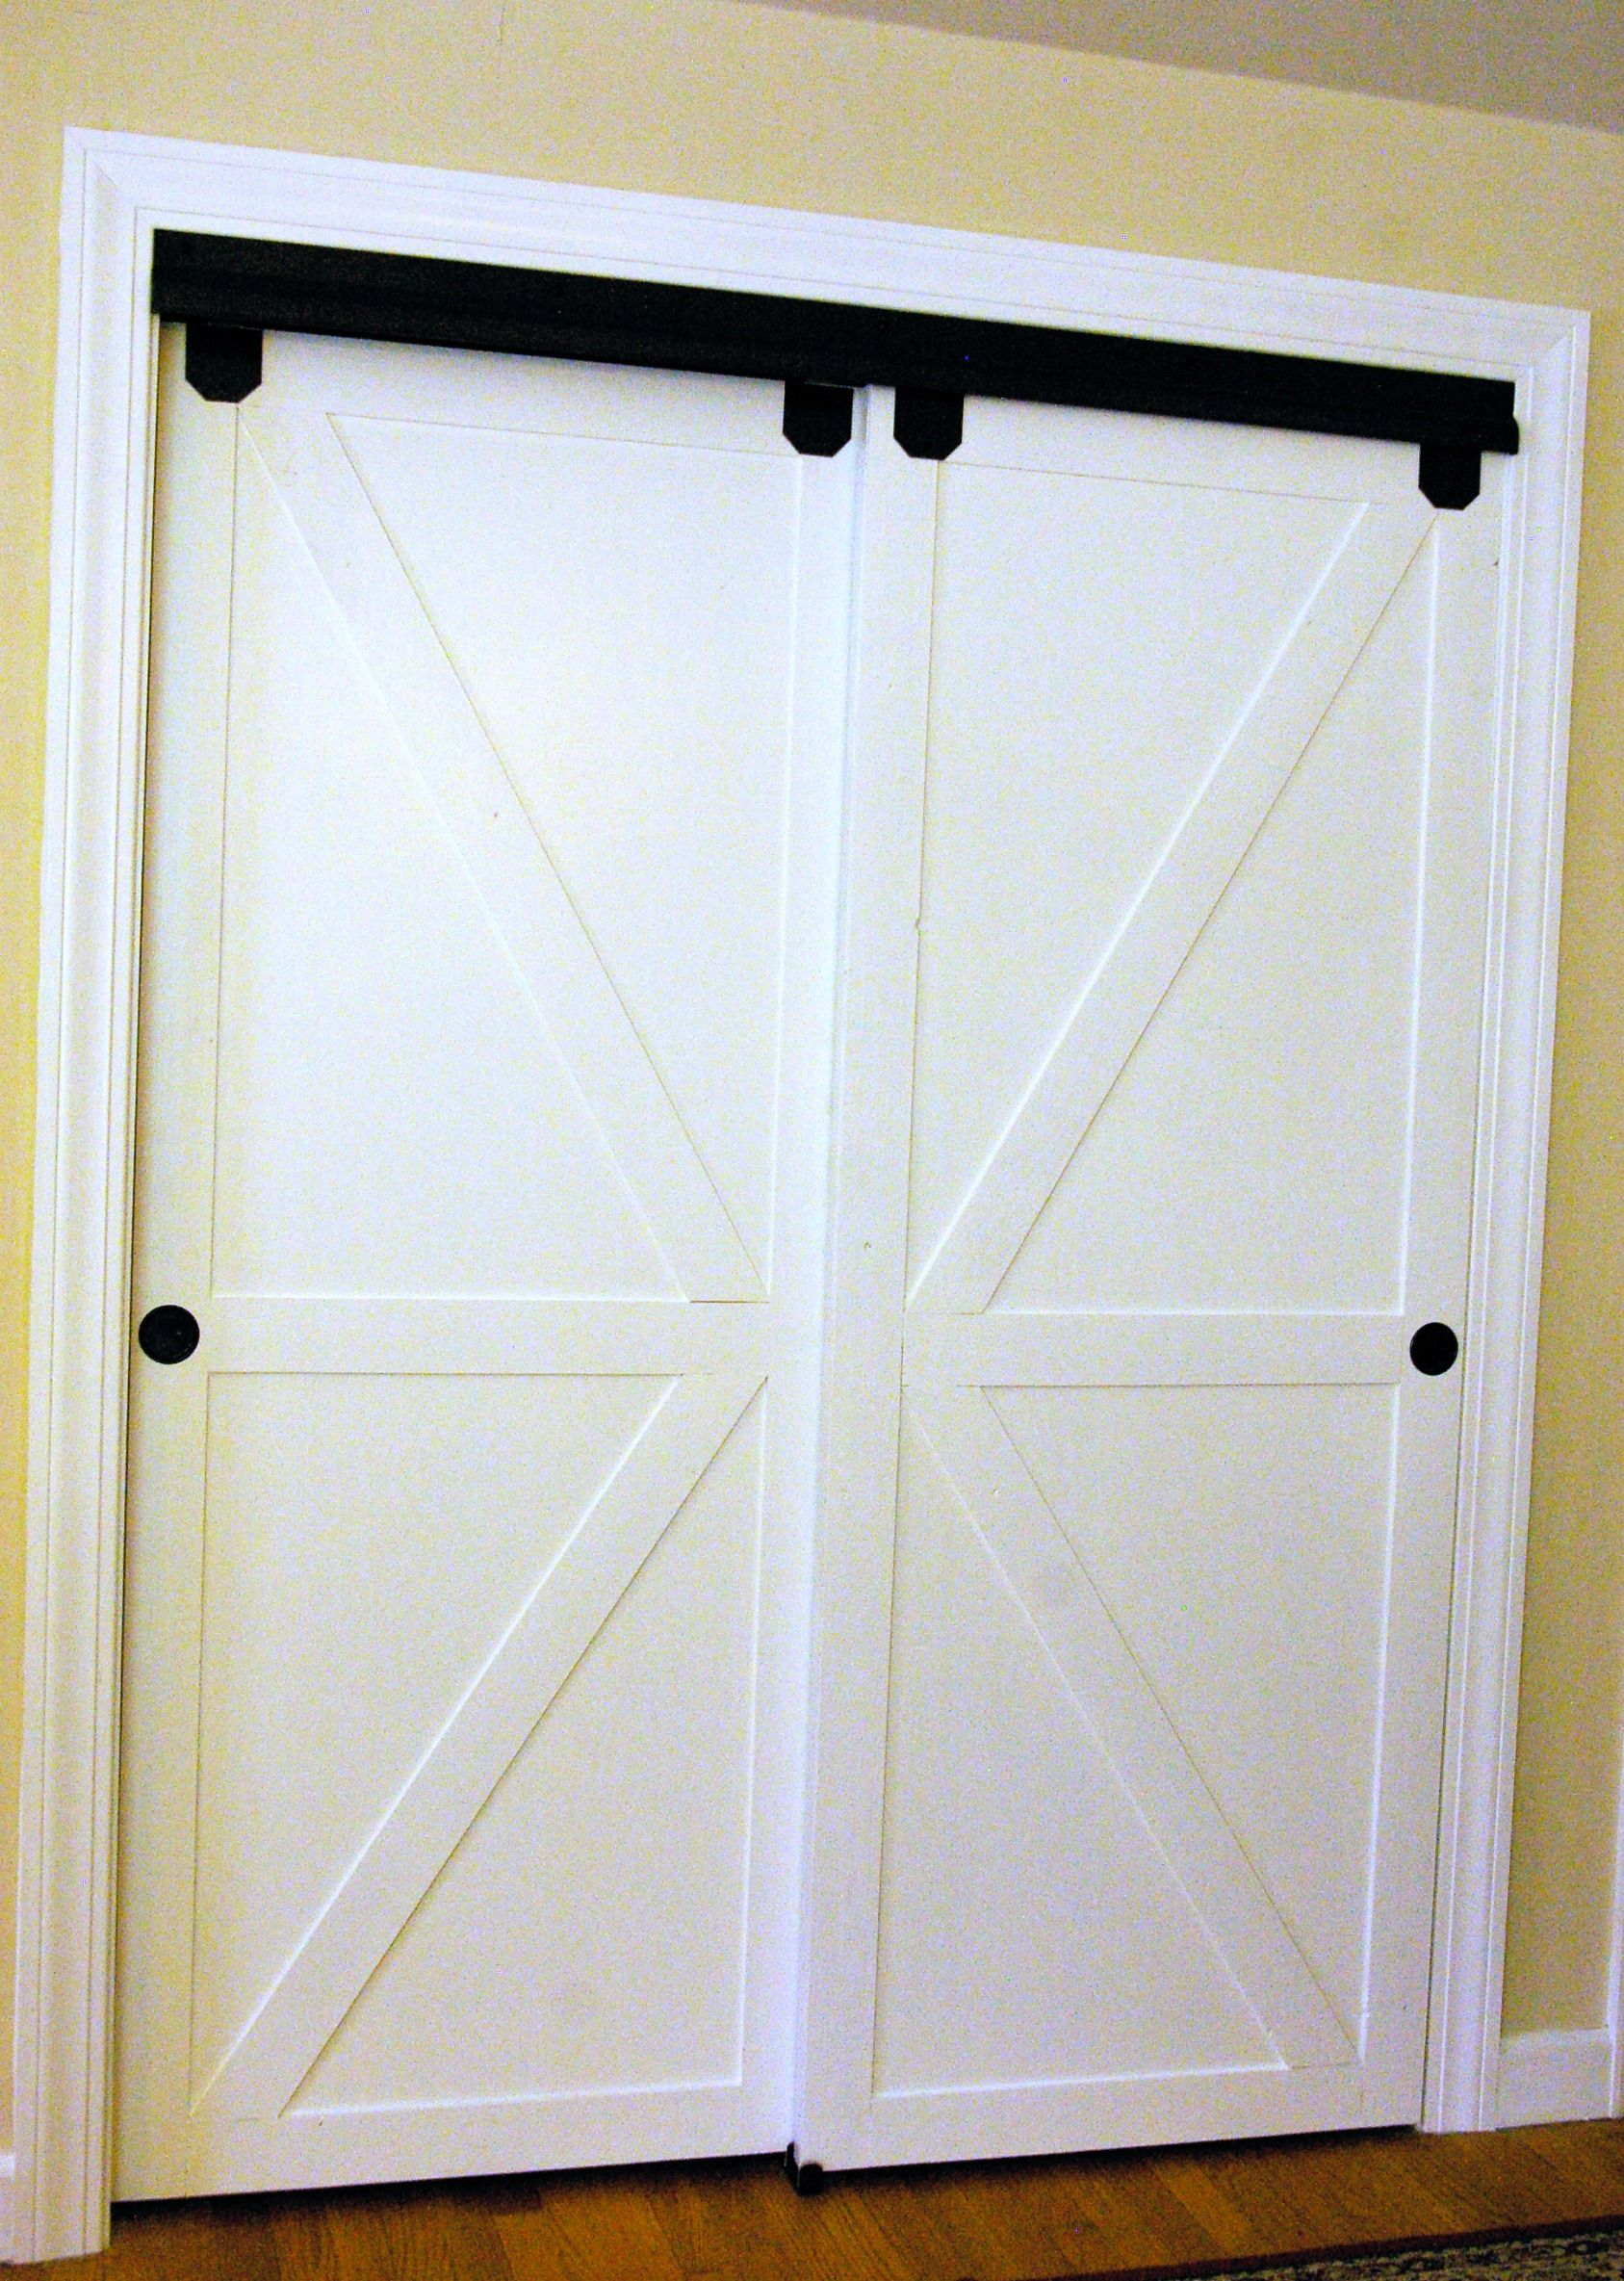 Closet Sliding Doors I love what she did with her closet doors to make them BKUSCZQ